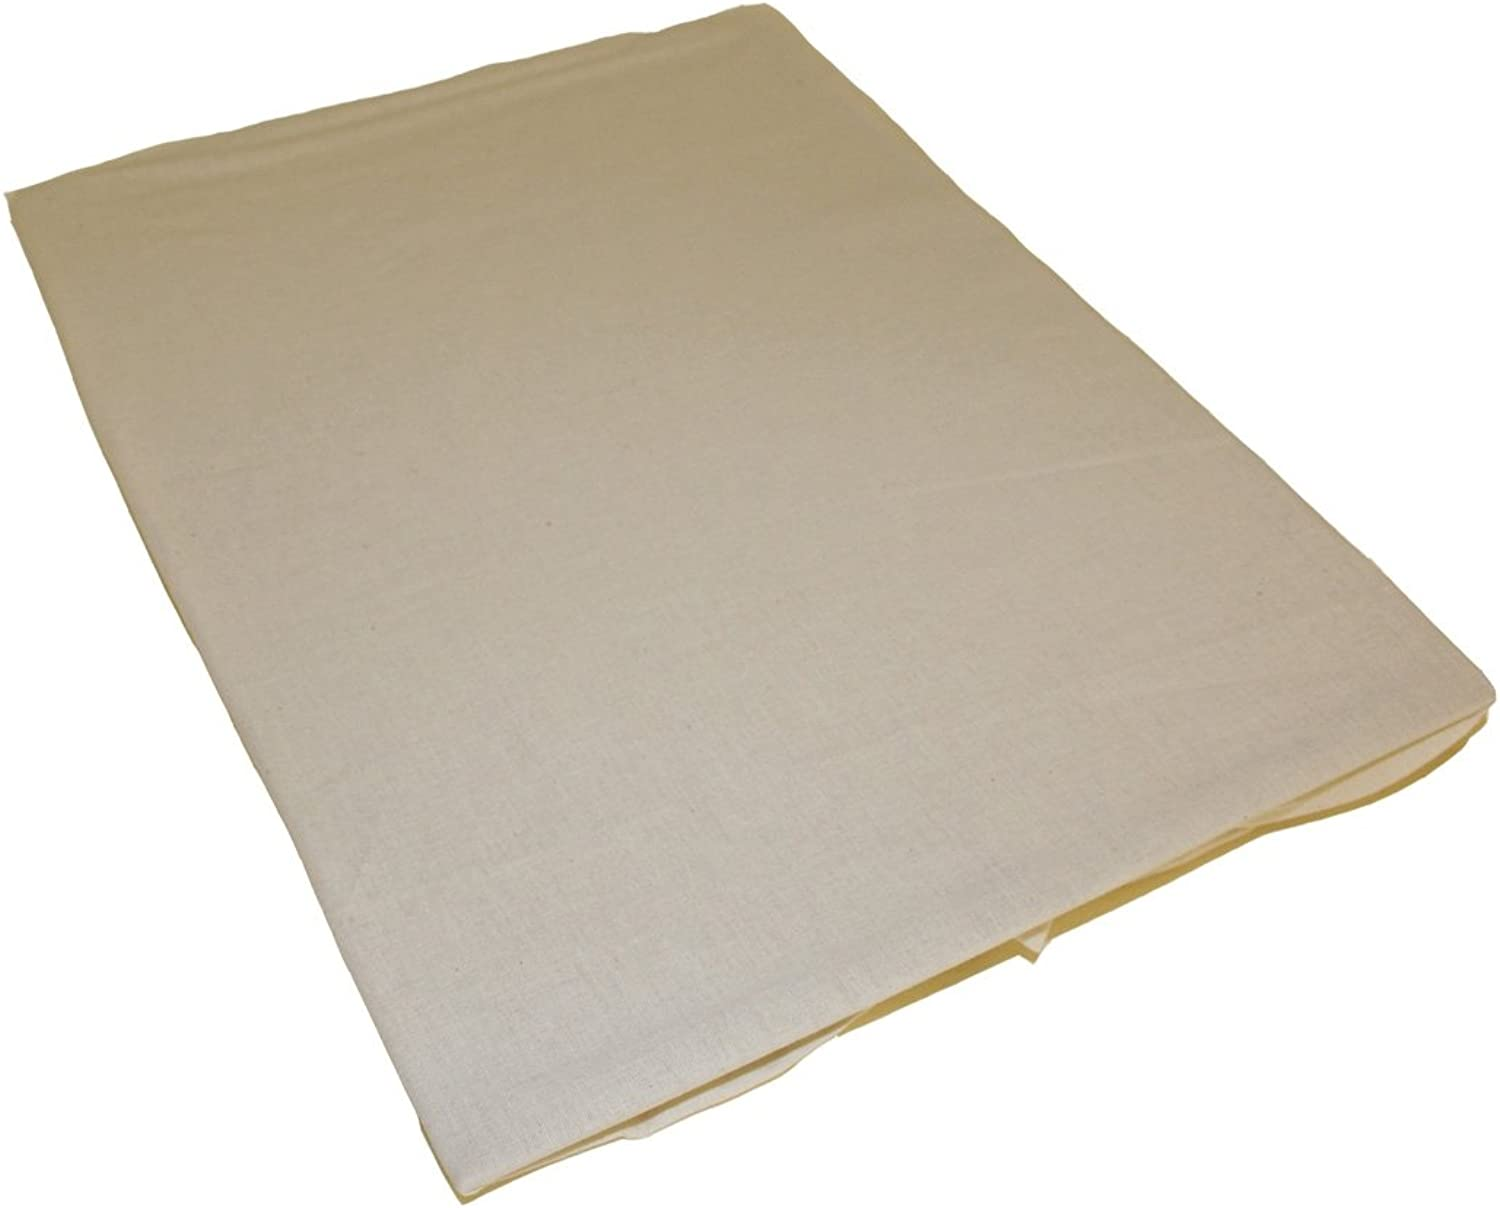 Stokke Sleepi Fitted Sheet For Crib, Beige